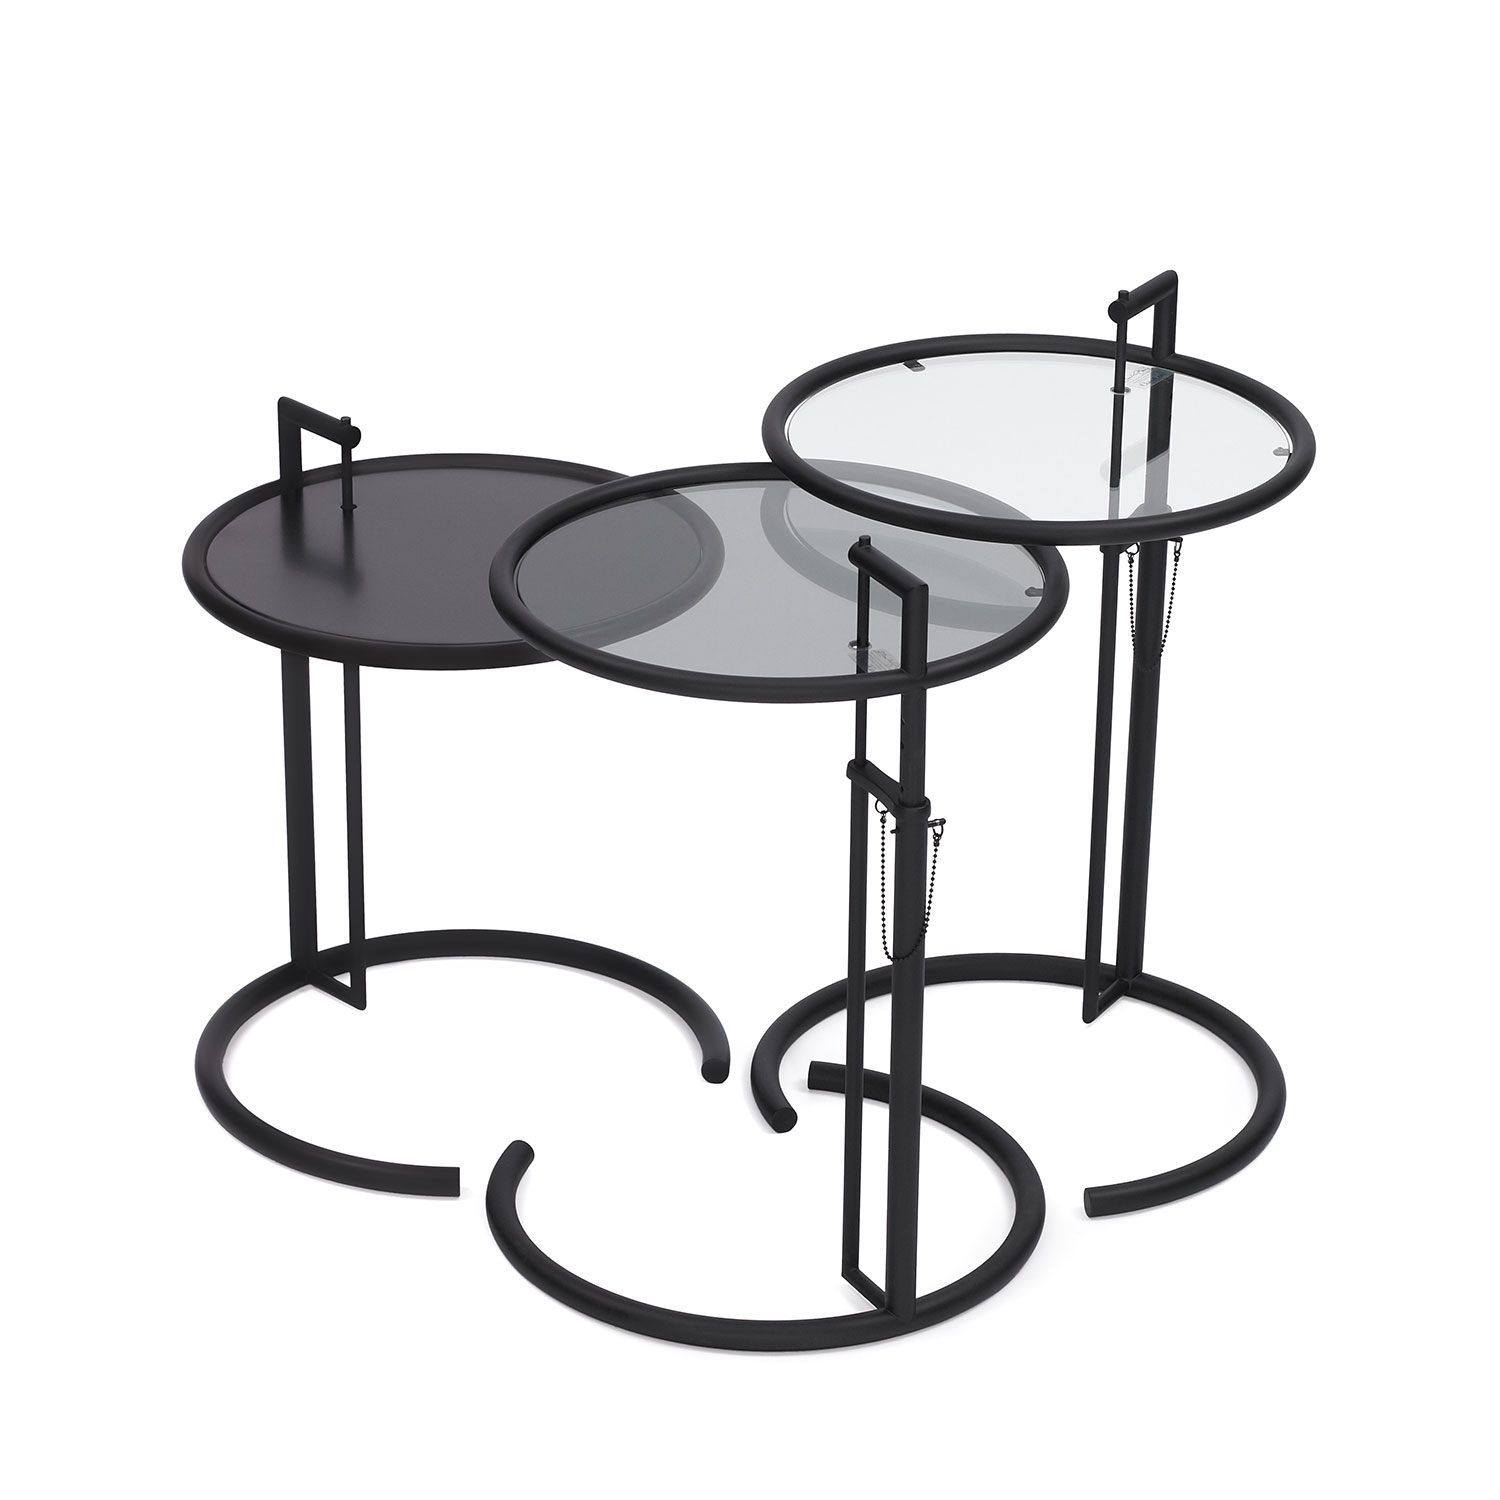 Best new furniture at salone del mobile 2015 - E 1027 table by eileen gray ...